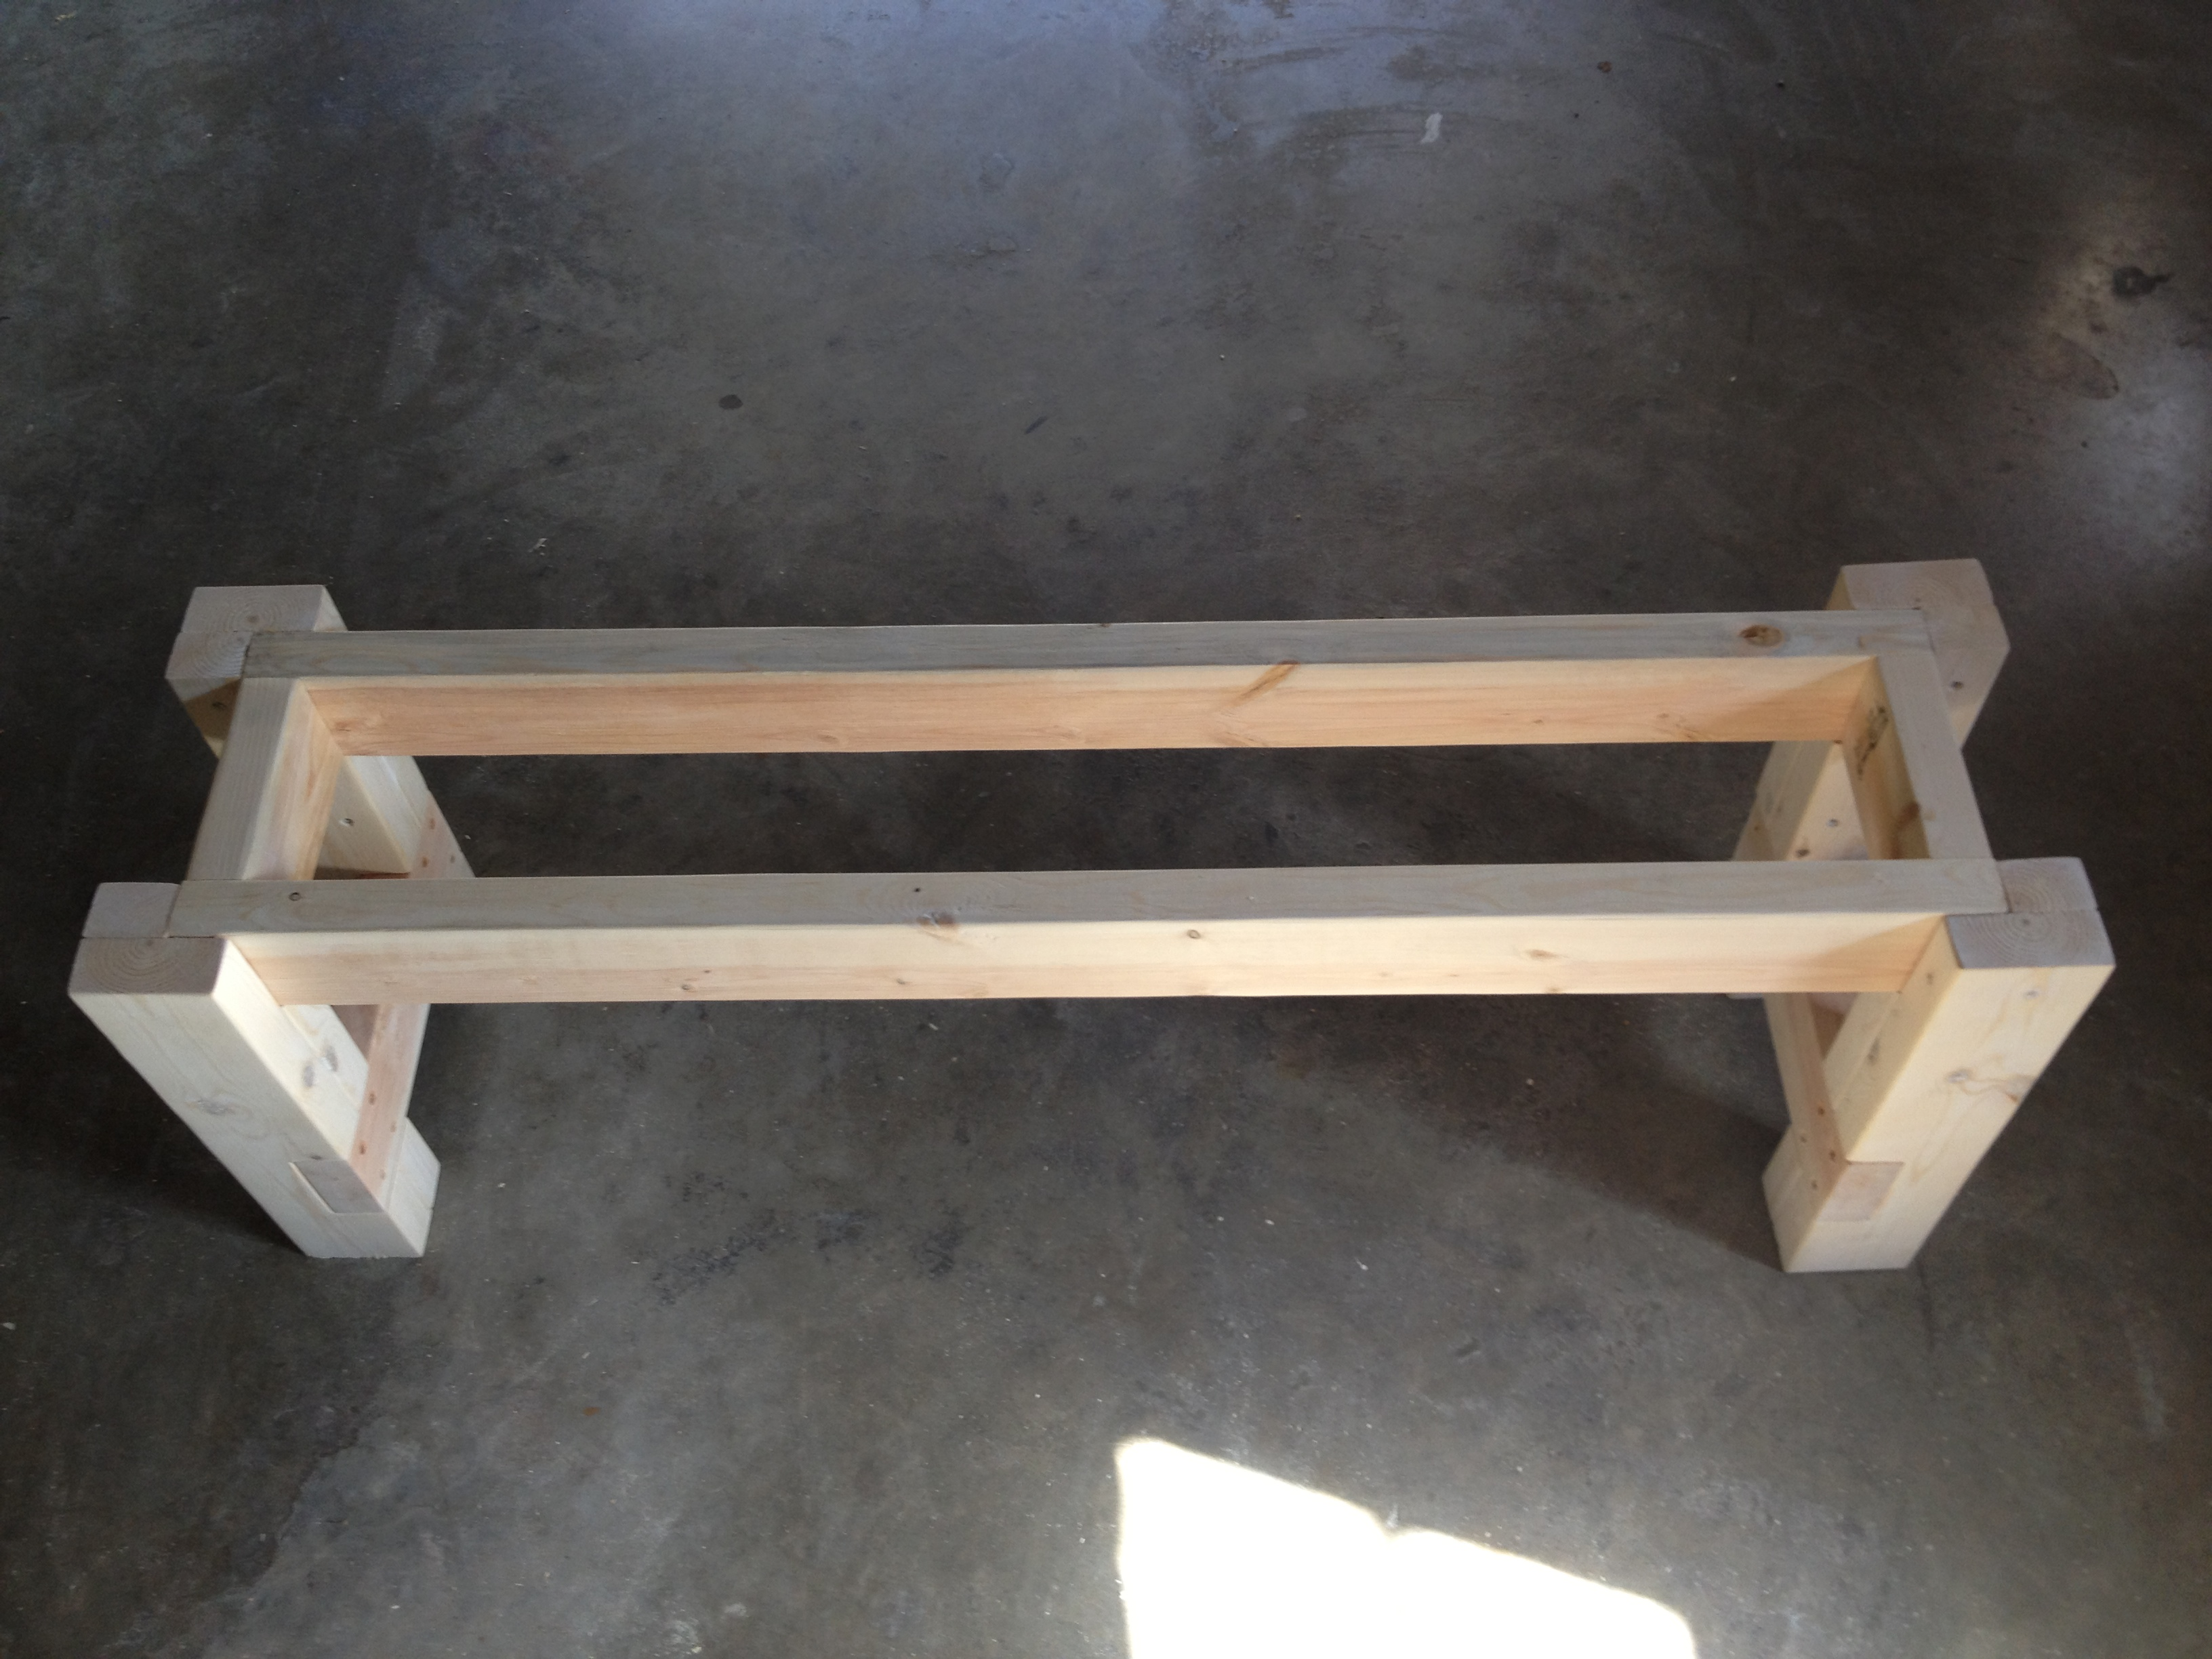 Free plans for making a rustic farmhouse table bench | A ...